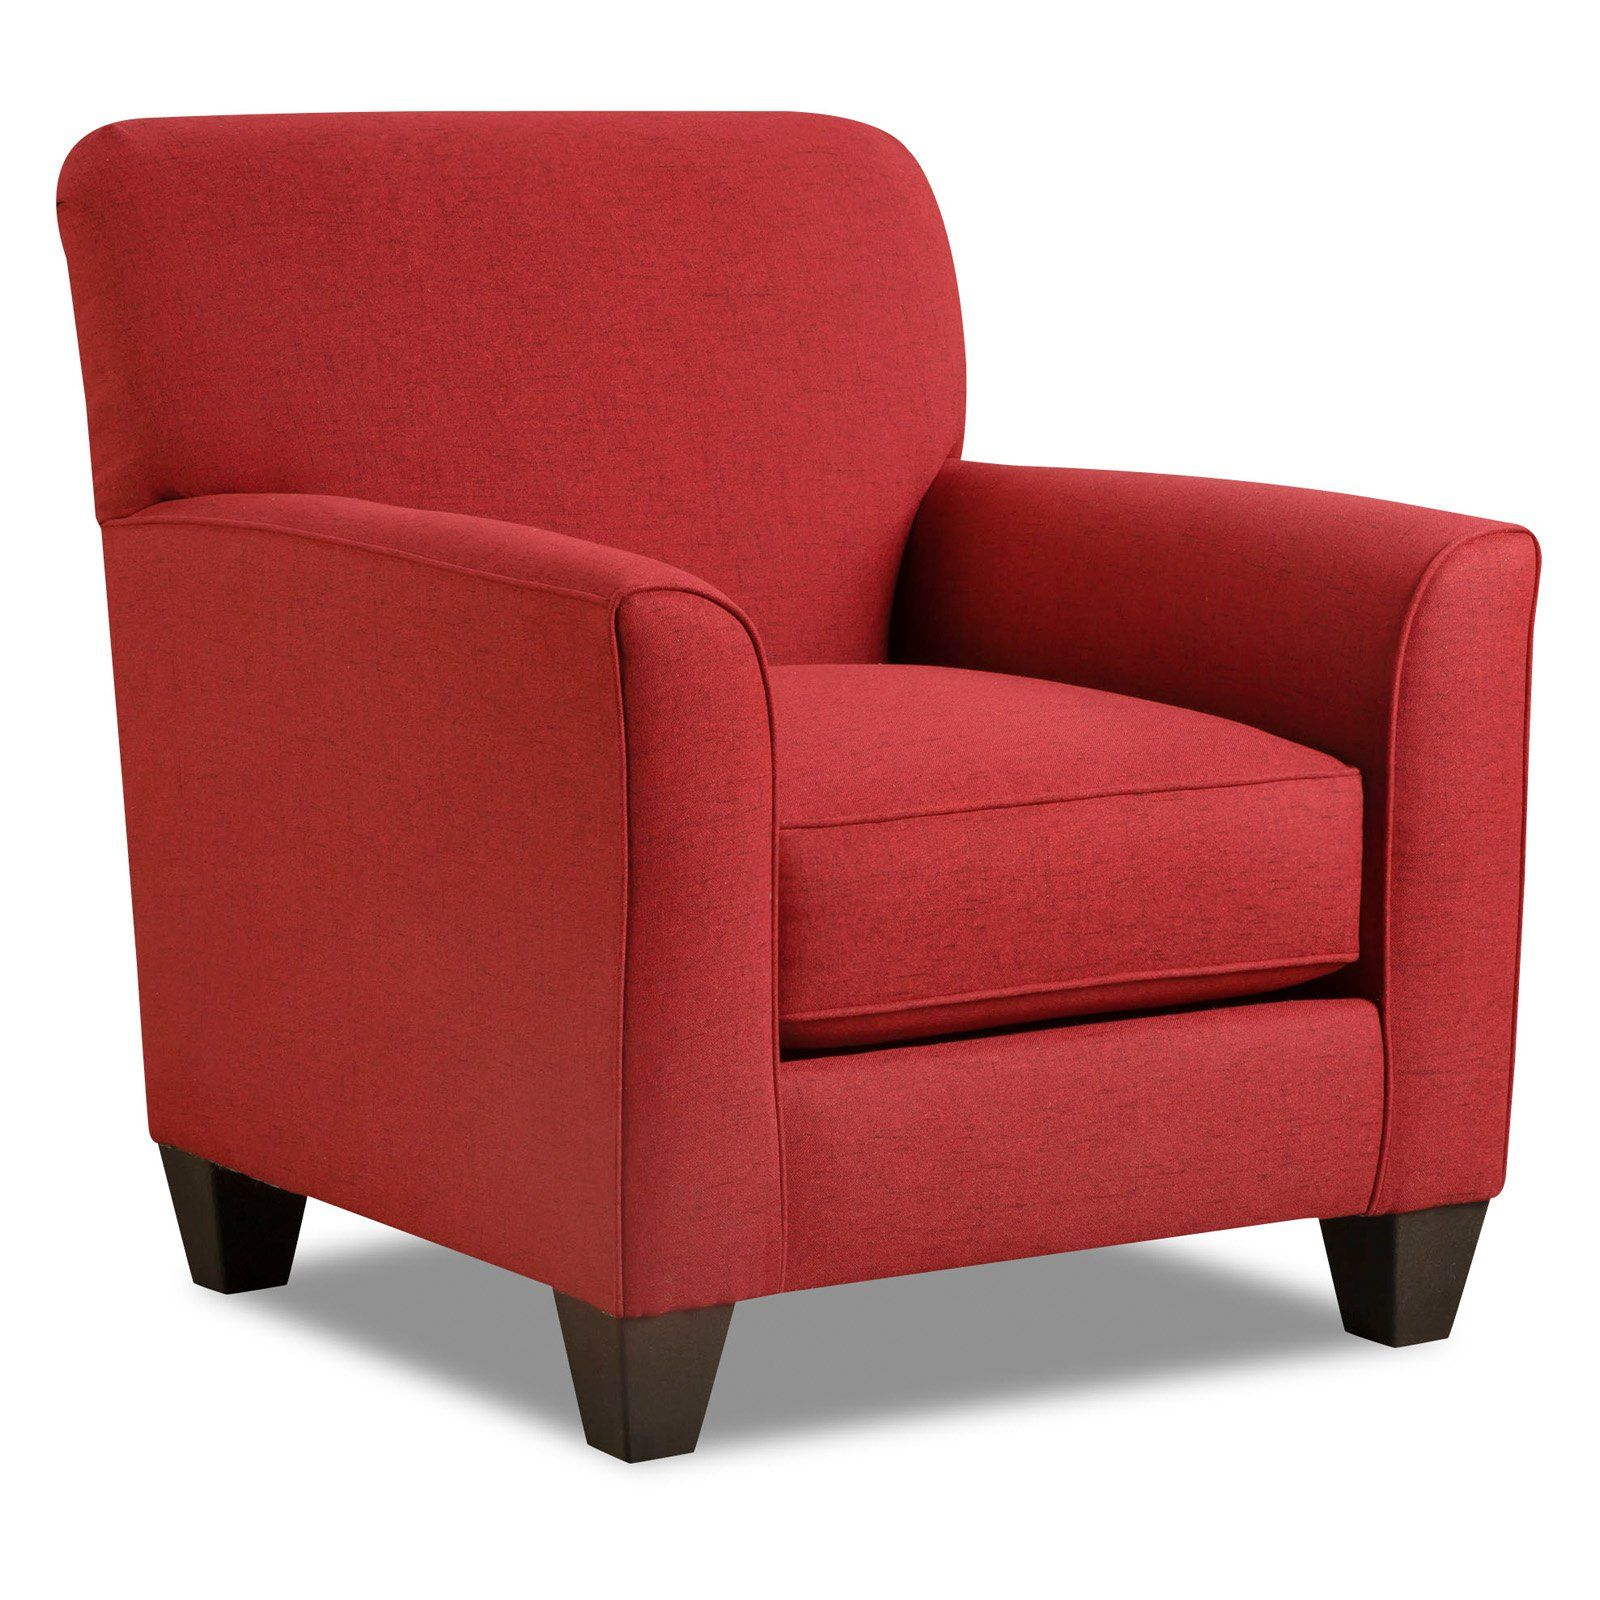 Oliver Pierce Bexley Club Chair Red in 2019 Accent